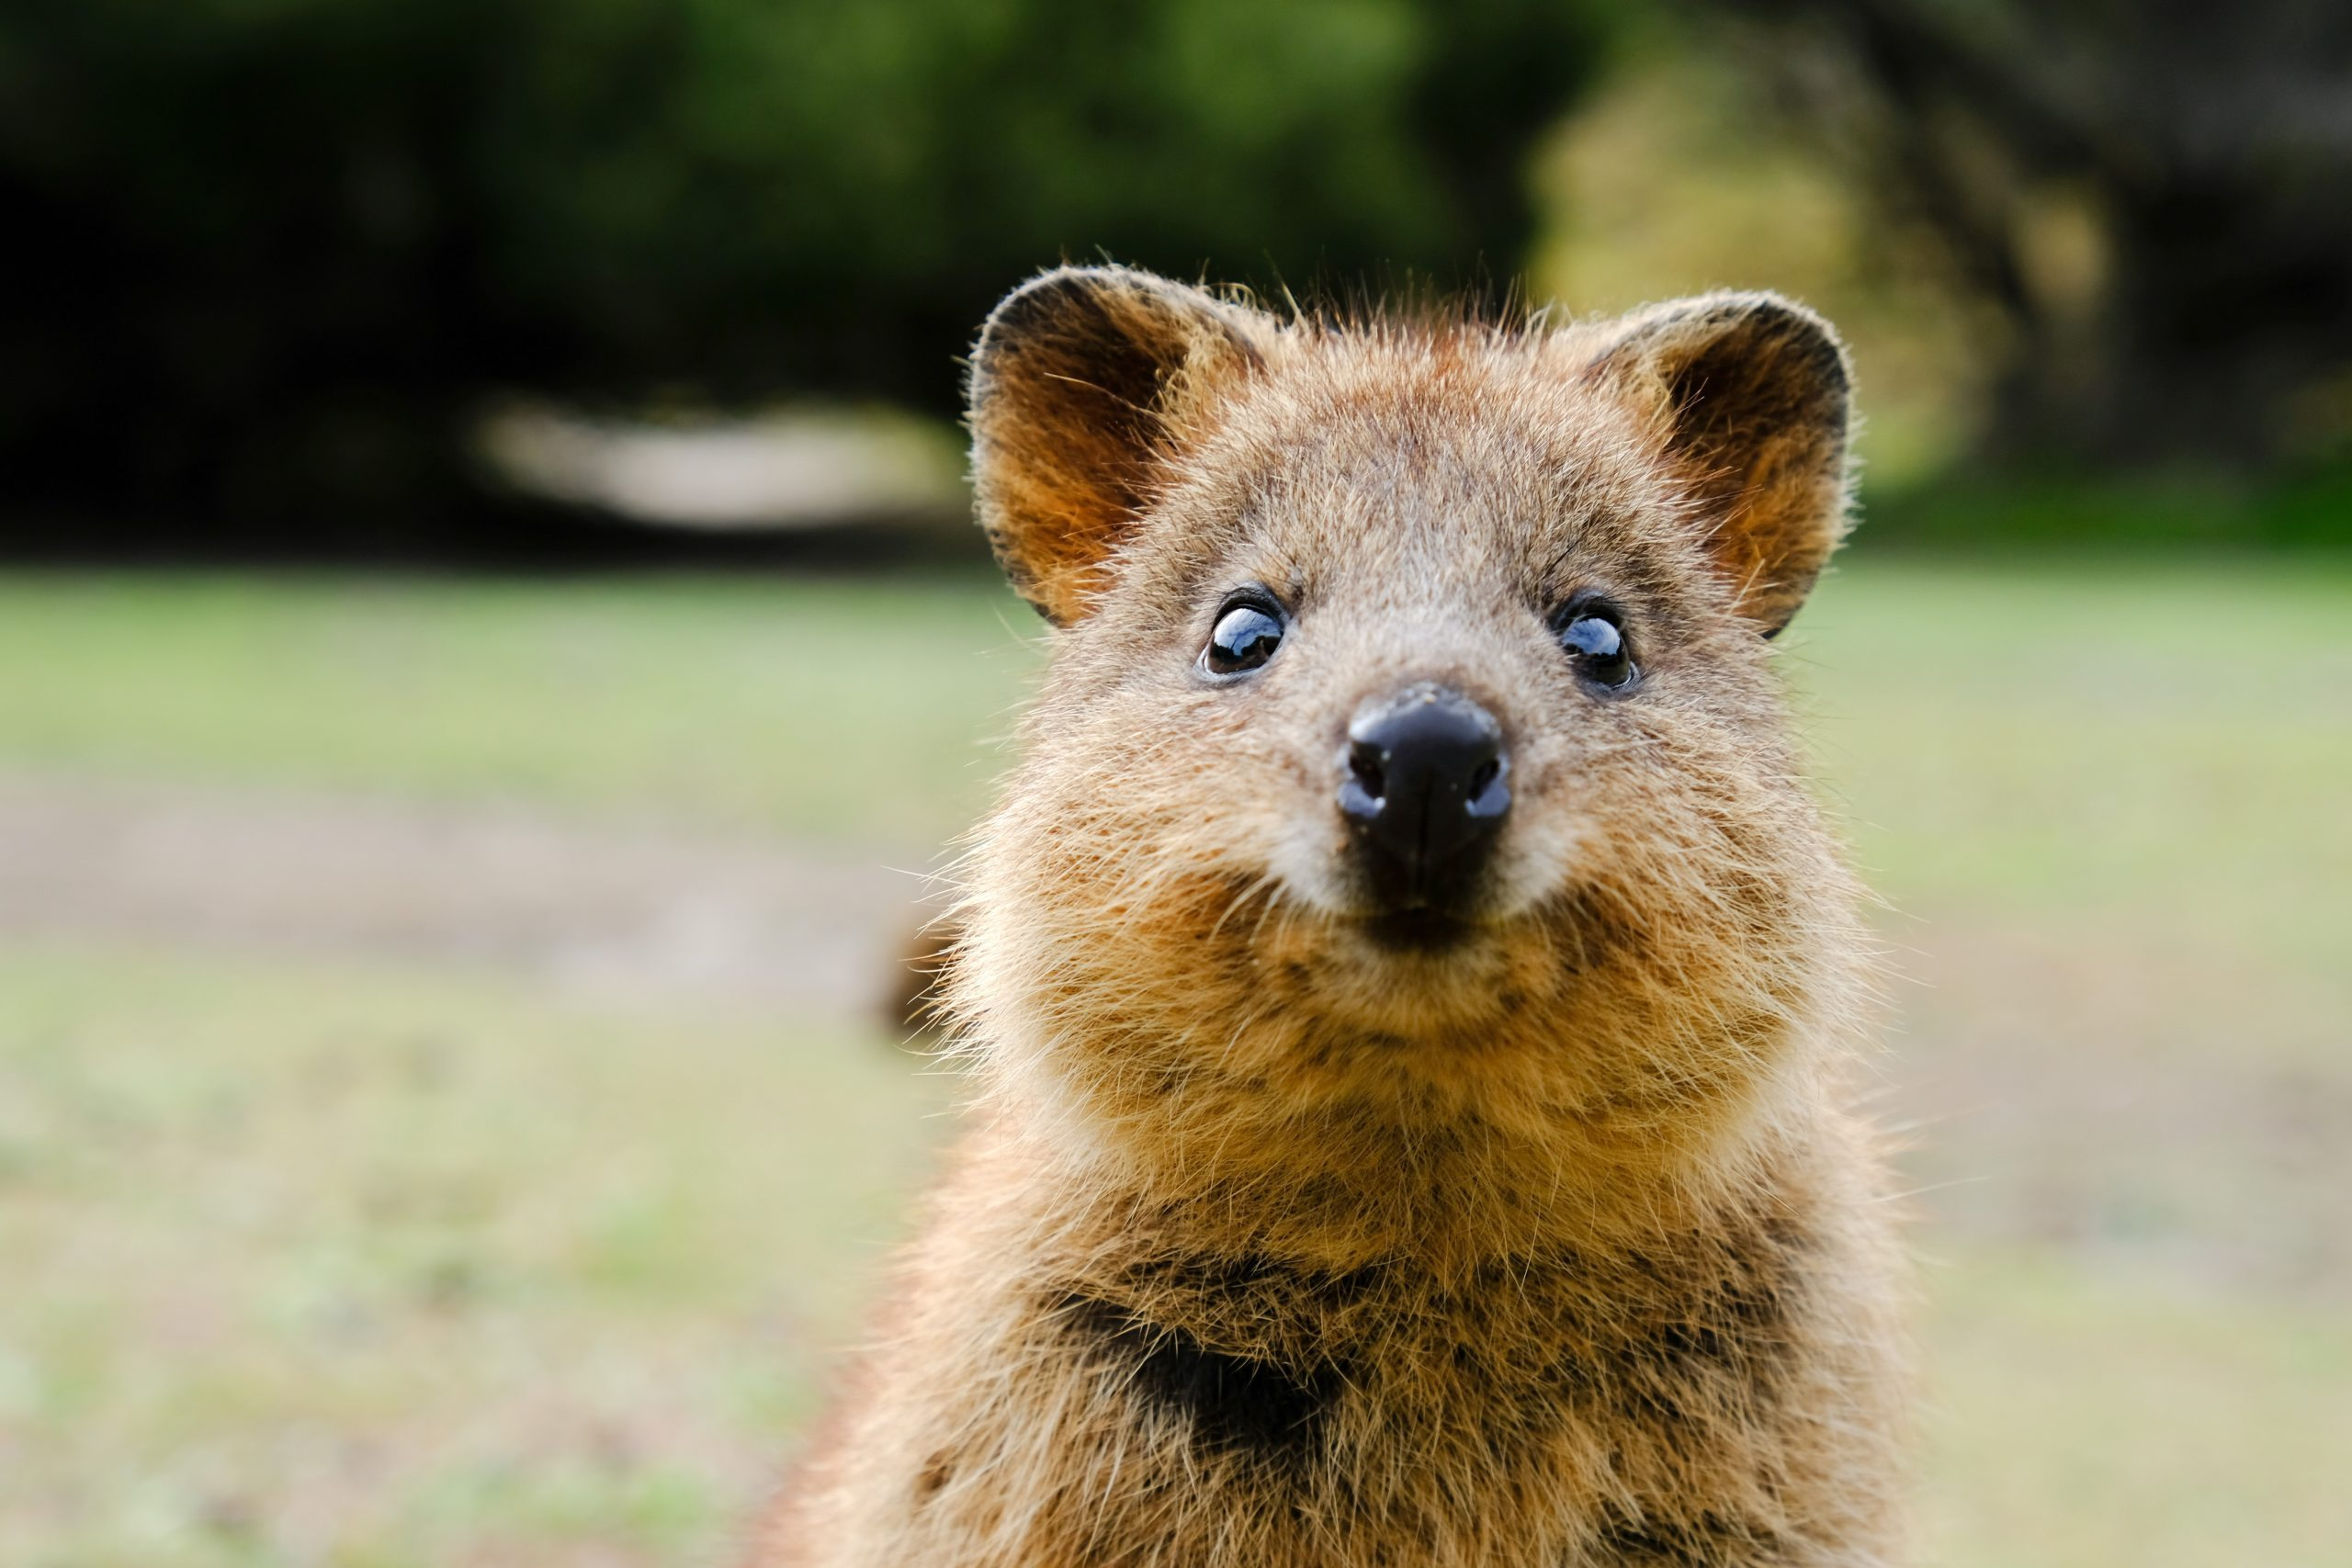 Close-up shot of a quokka, Setonix brachyrus, on Rottnest Island, looking right into the camera.